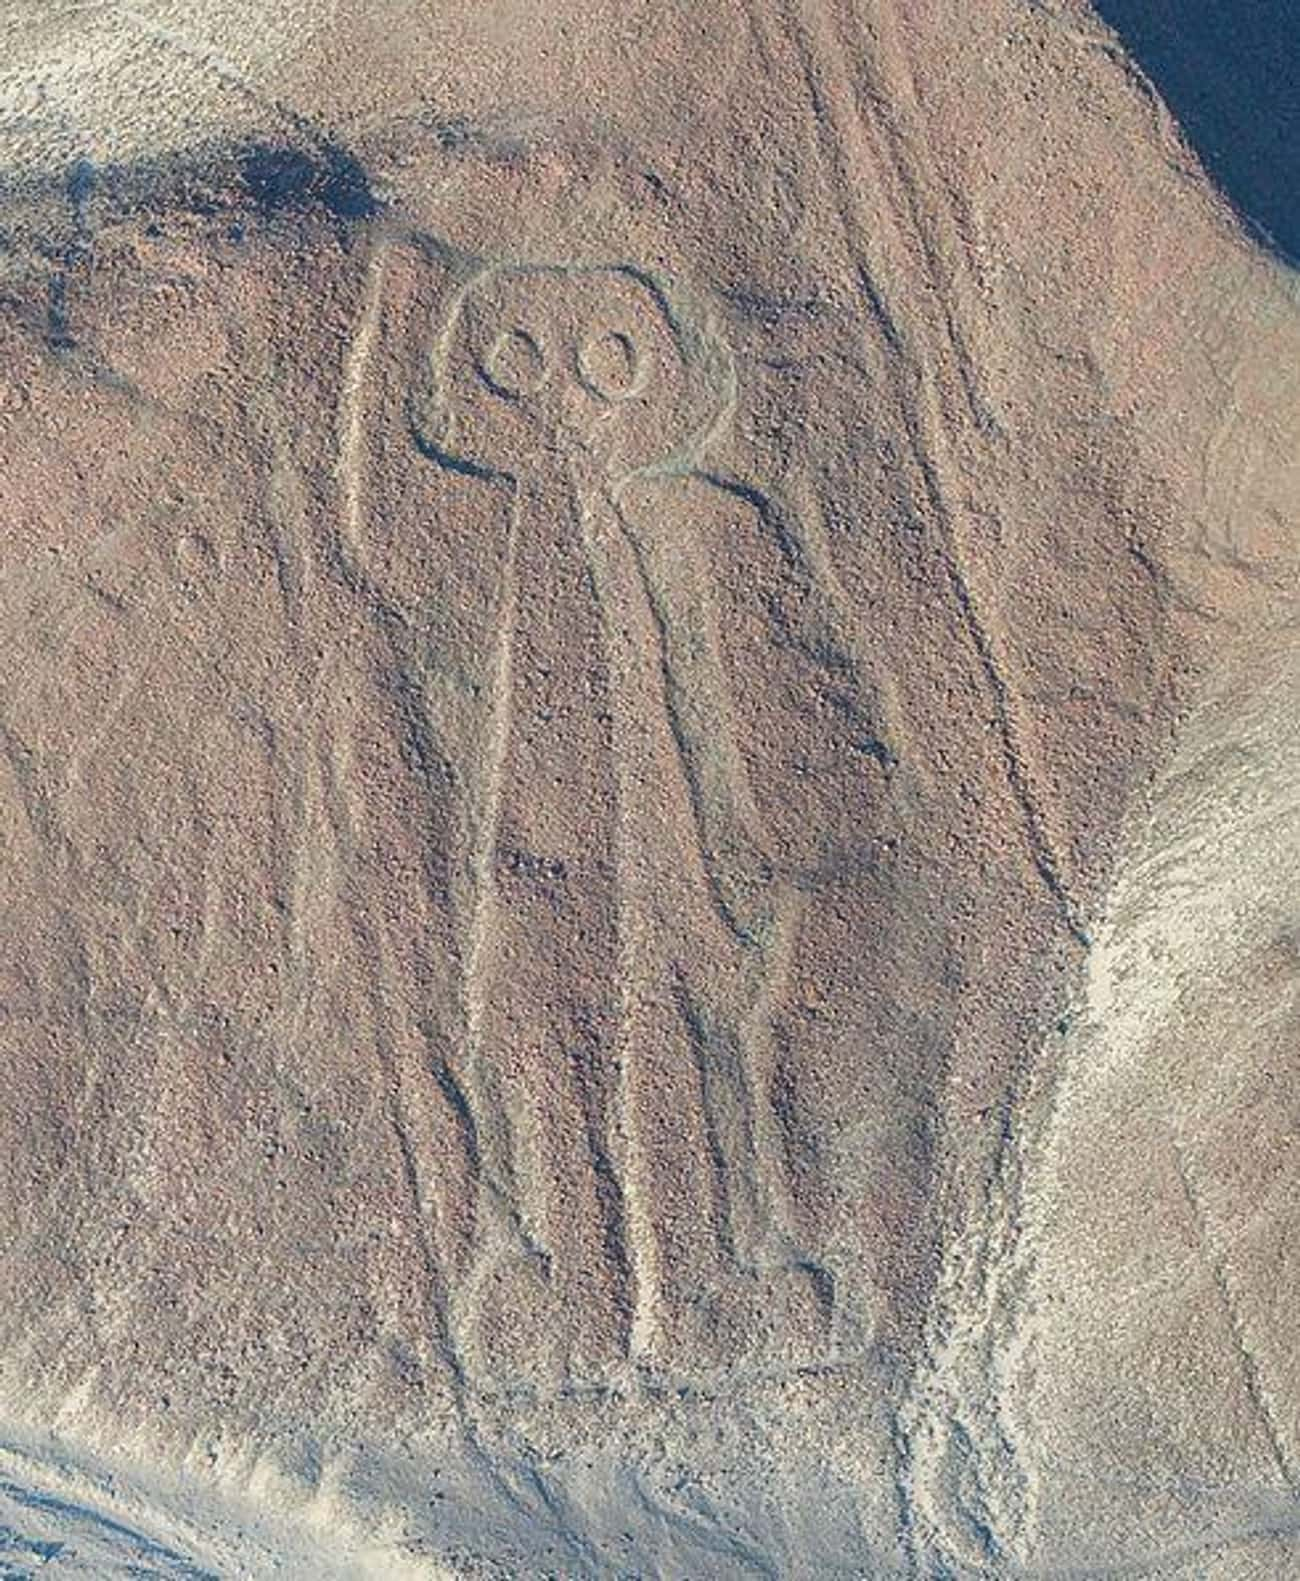 The Geoglyphs Of Nazca Were Cr is listed (or ranked) 3 on the list 16 Times 'Ancient Aliens' Made (Reasonably) Compelling Points